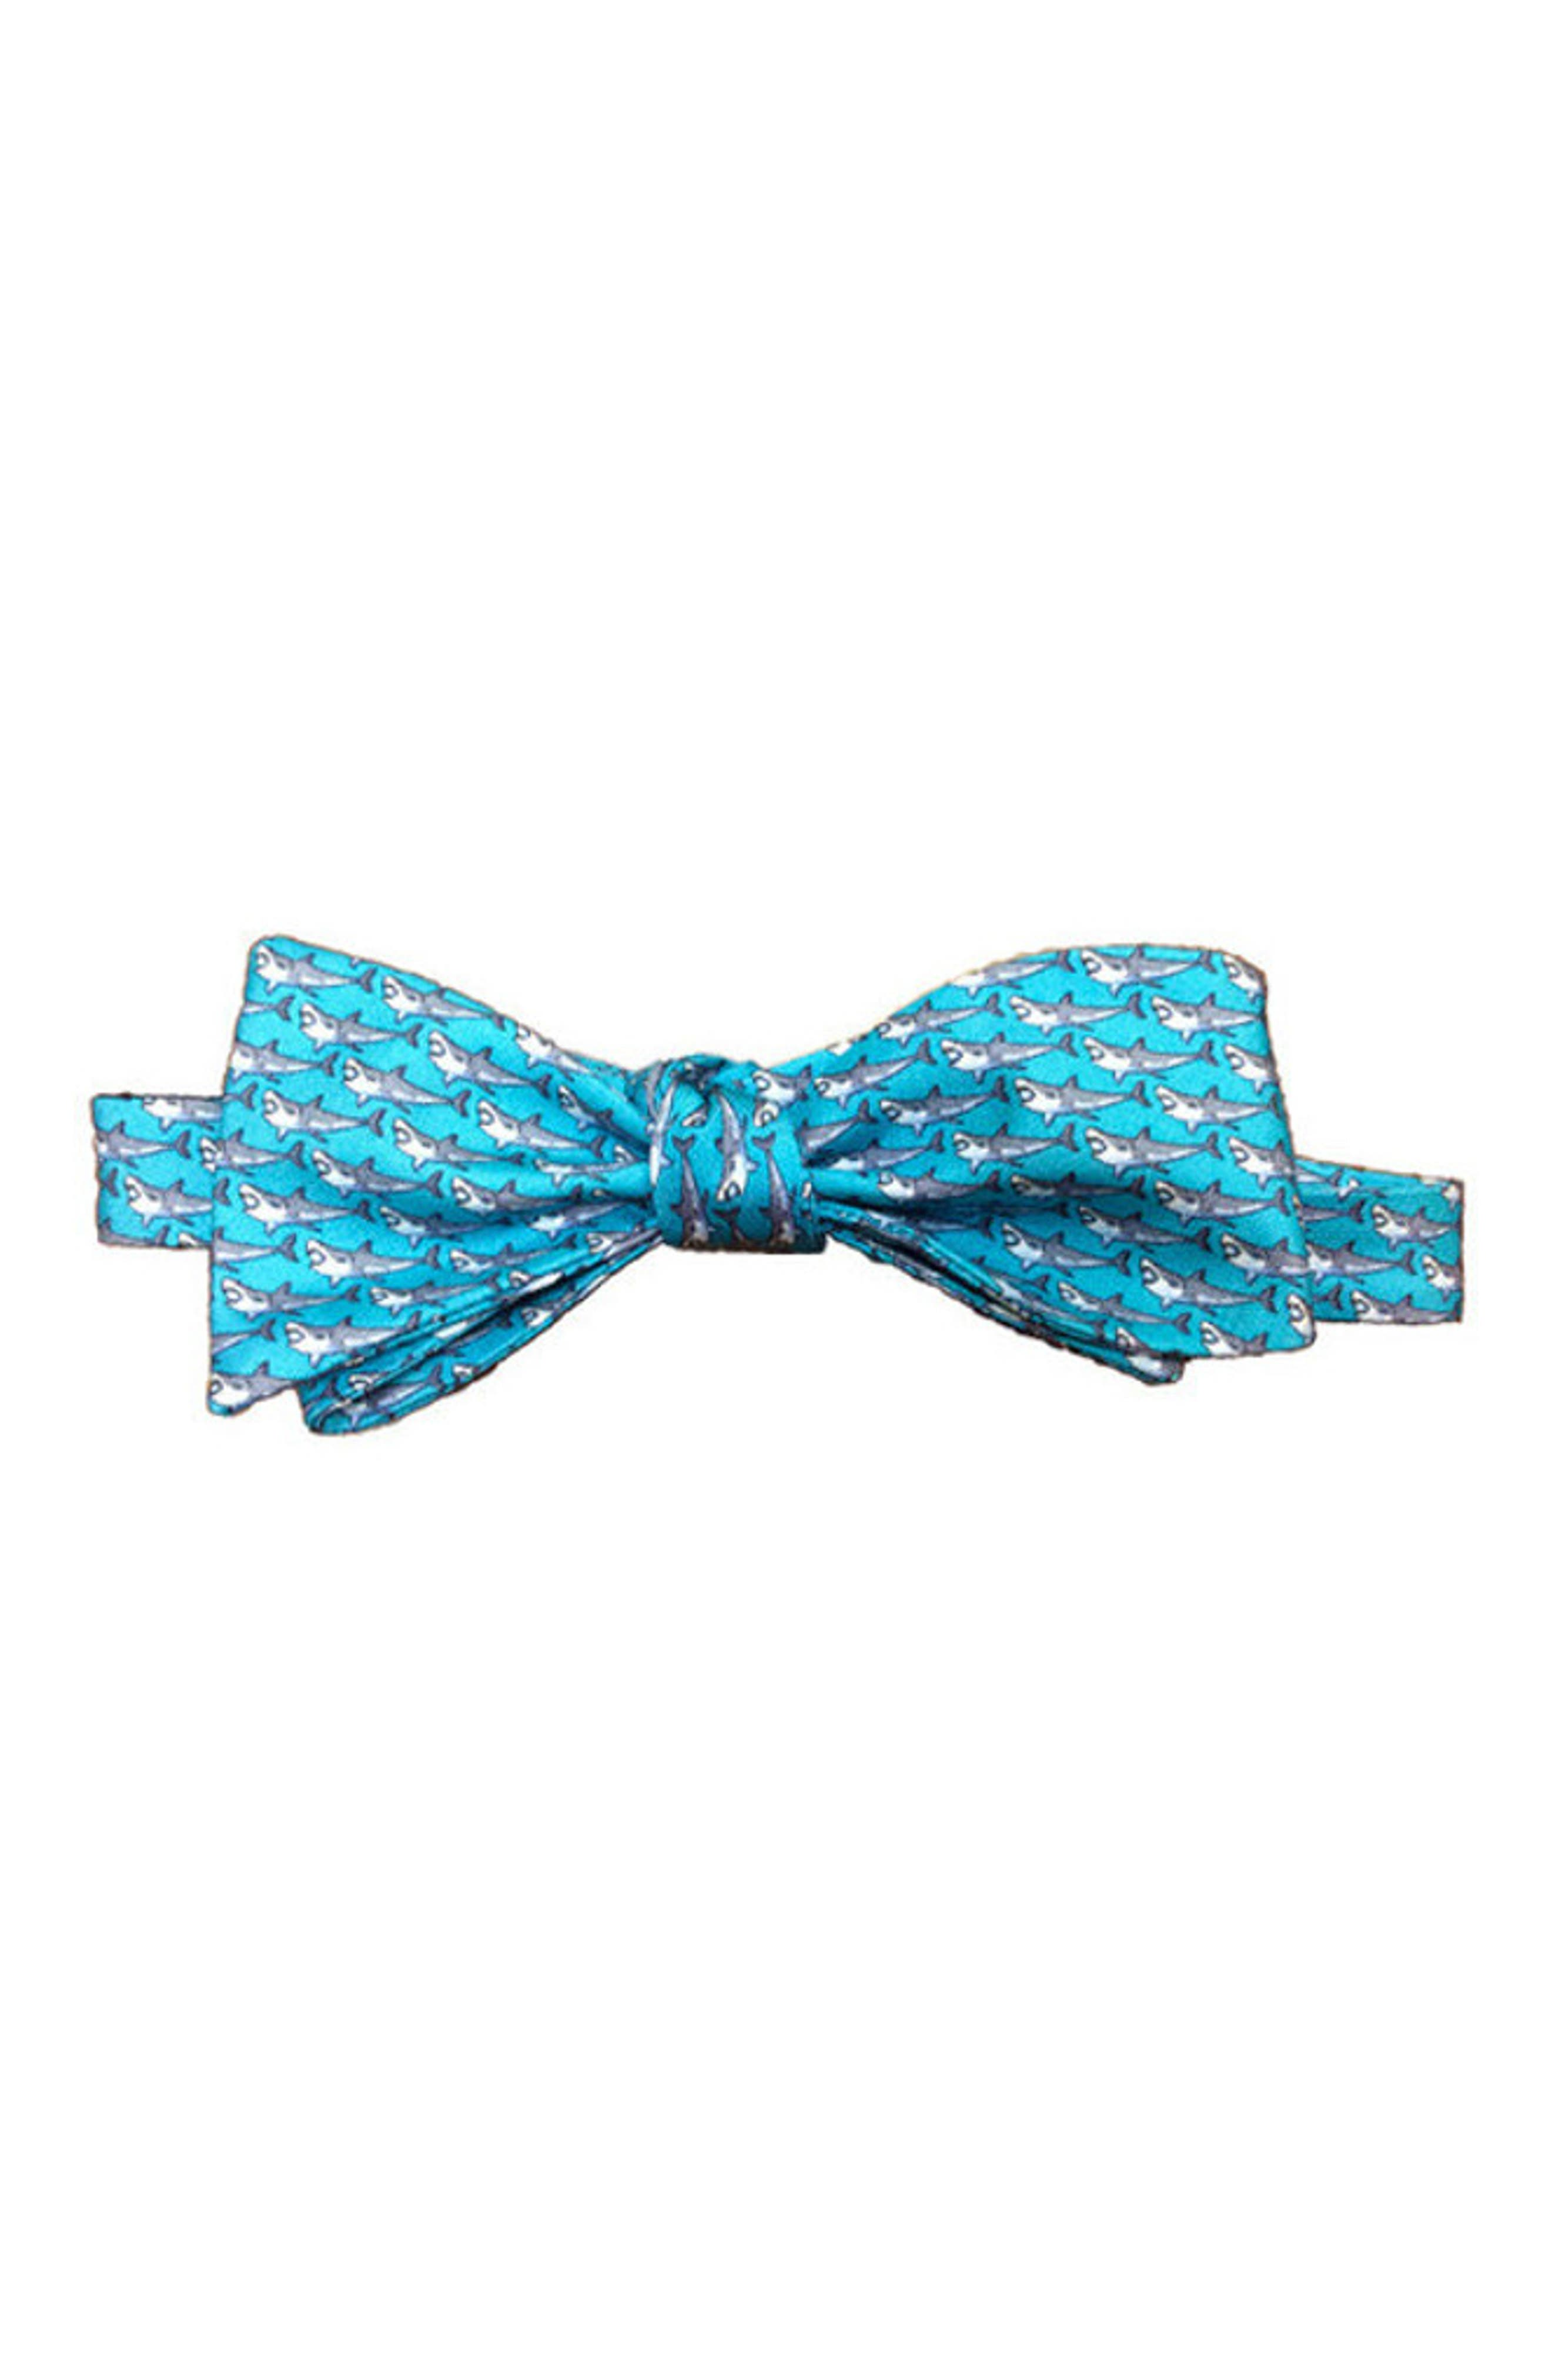 Shark Week Silk Bow Tie,                         Main,                         color, Turquoise